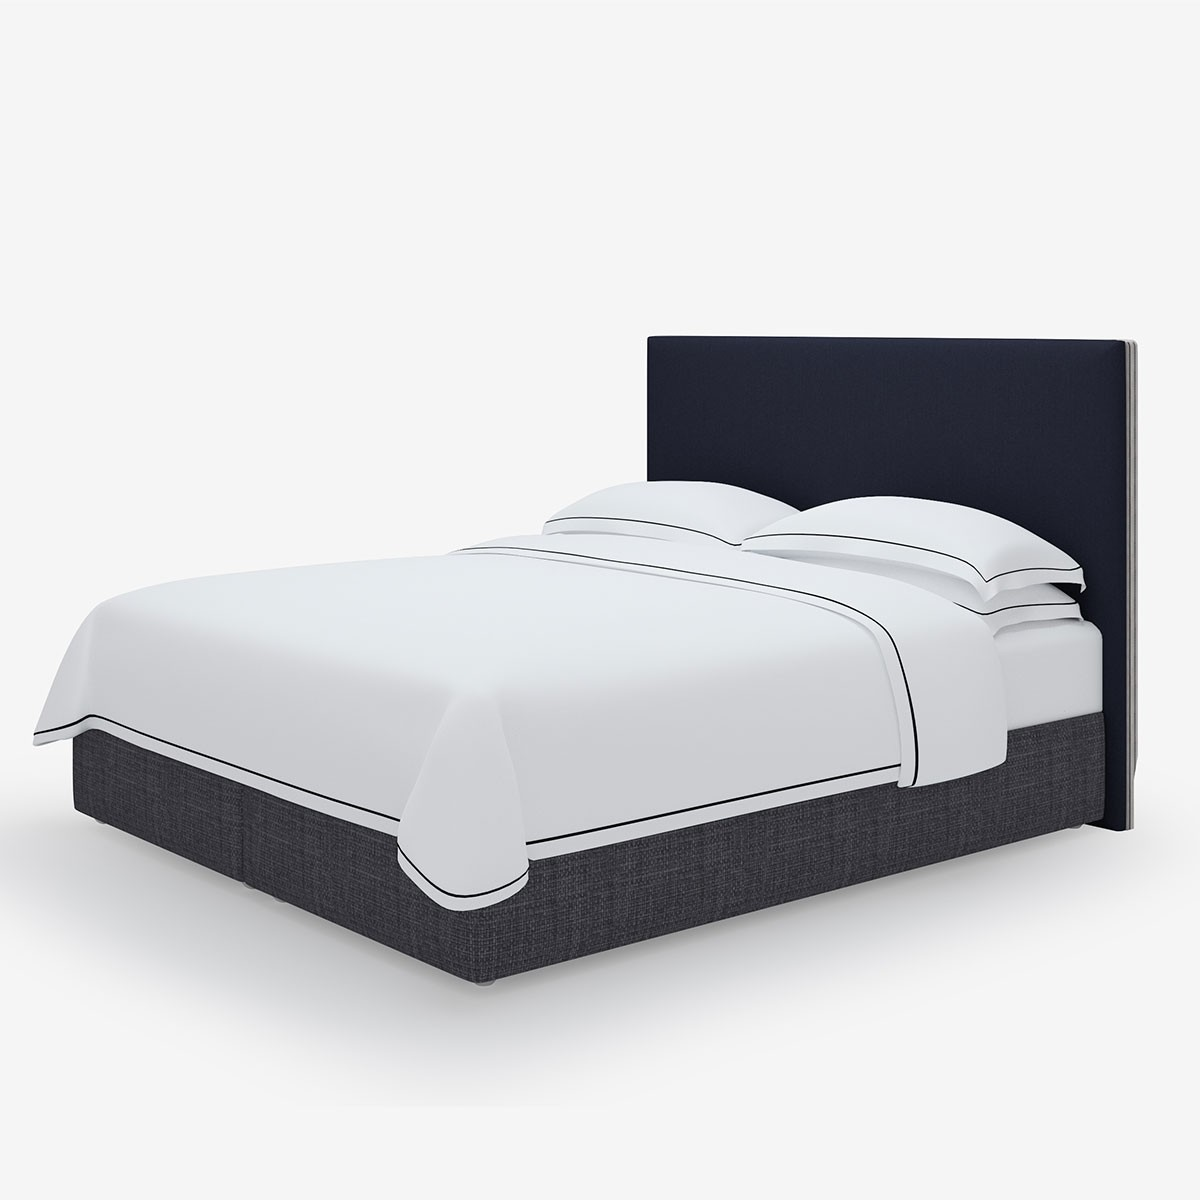 Simply Trimmed Super King Headboard in Studio Stripes Midnight Blue